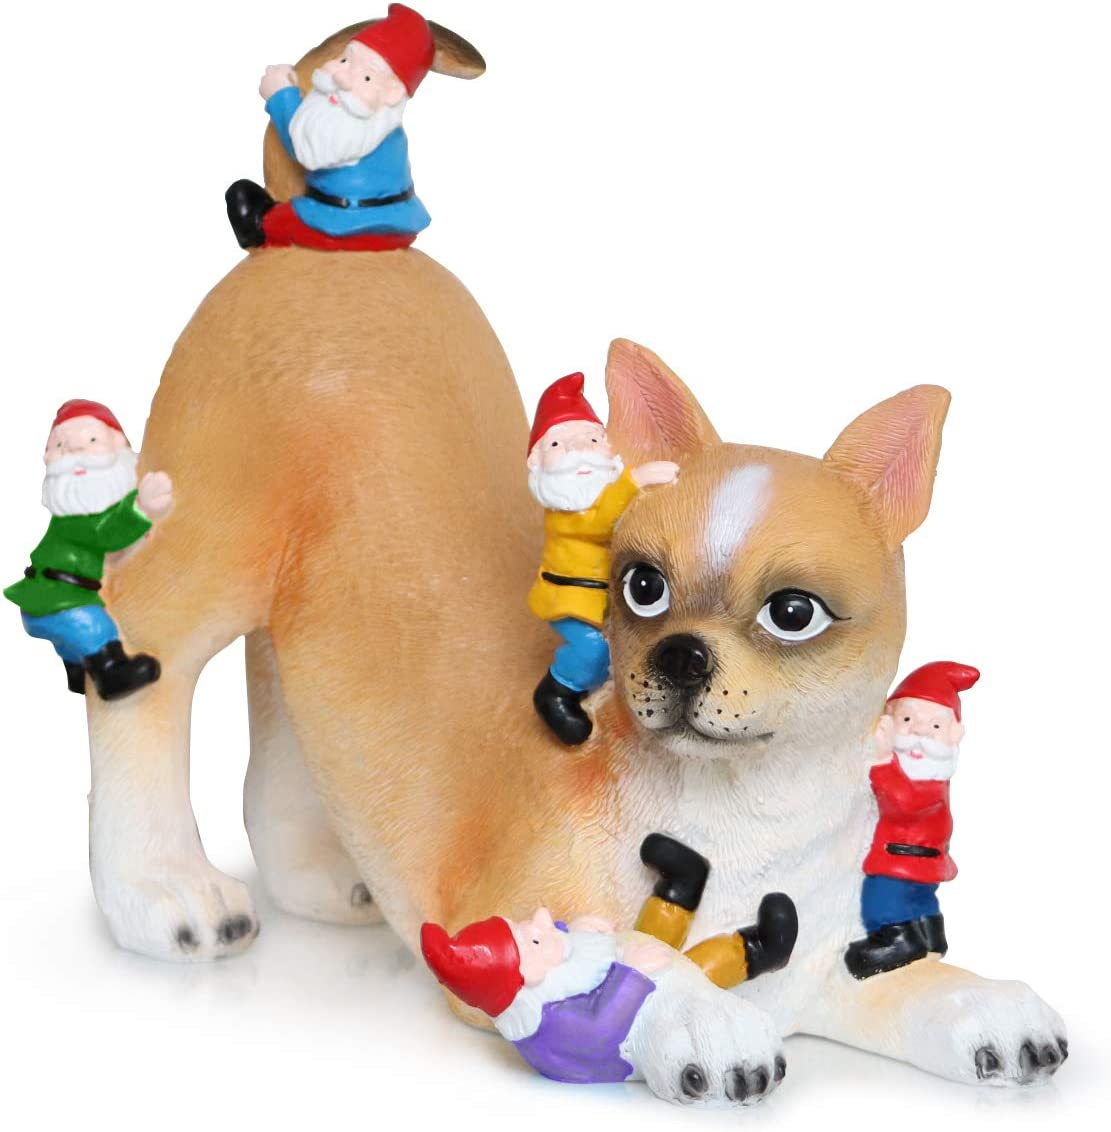 """Dakota Arts Cute Dog Garden Gnome Statue Figurine Ornament Large 11"""" Great Indoor and Outdoor Hand Painted Gift Statue for Home or Office Best Art Decor Garden Gnomes"""